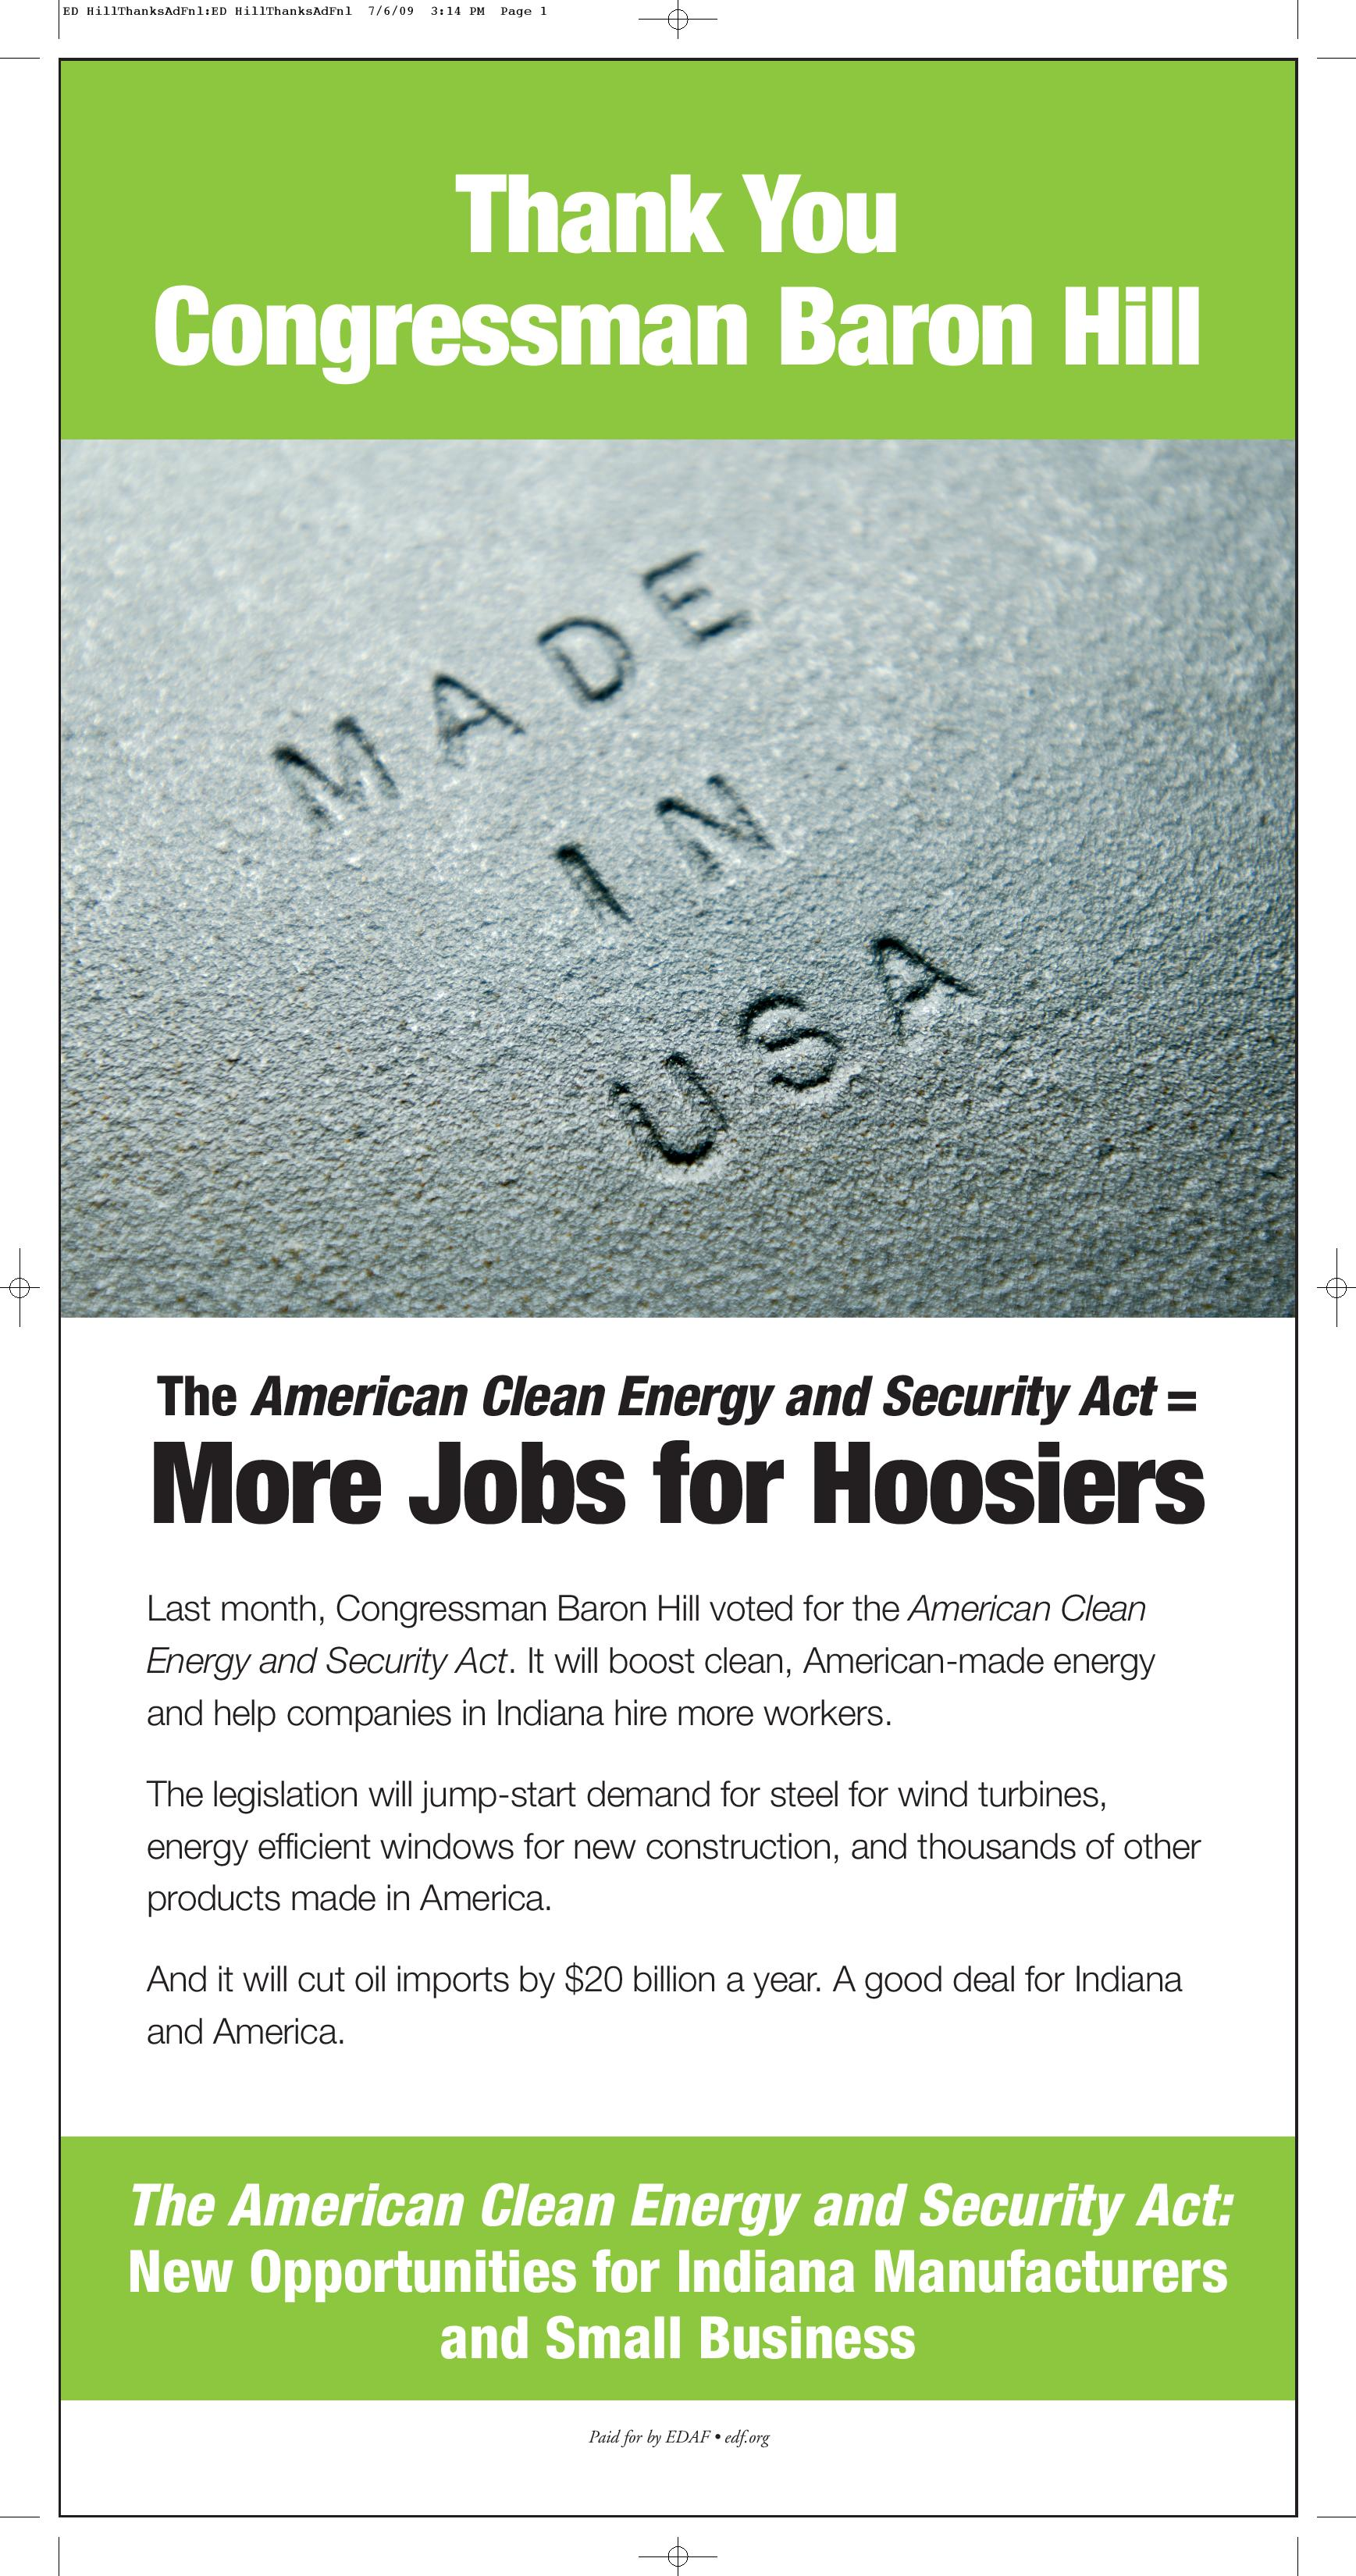 Thank You for Supporting the American Clean Energy and Security Act: Rep. Baron Hill